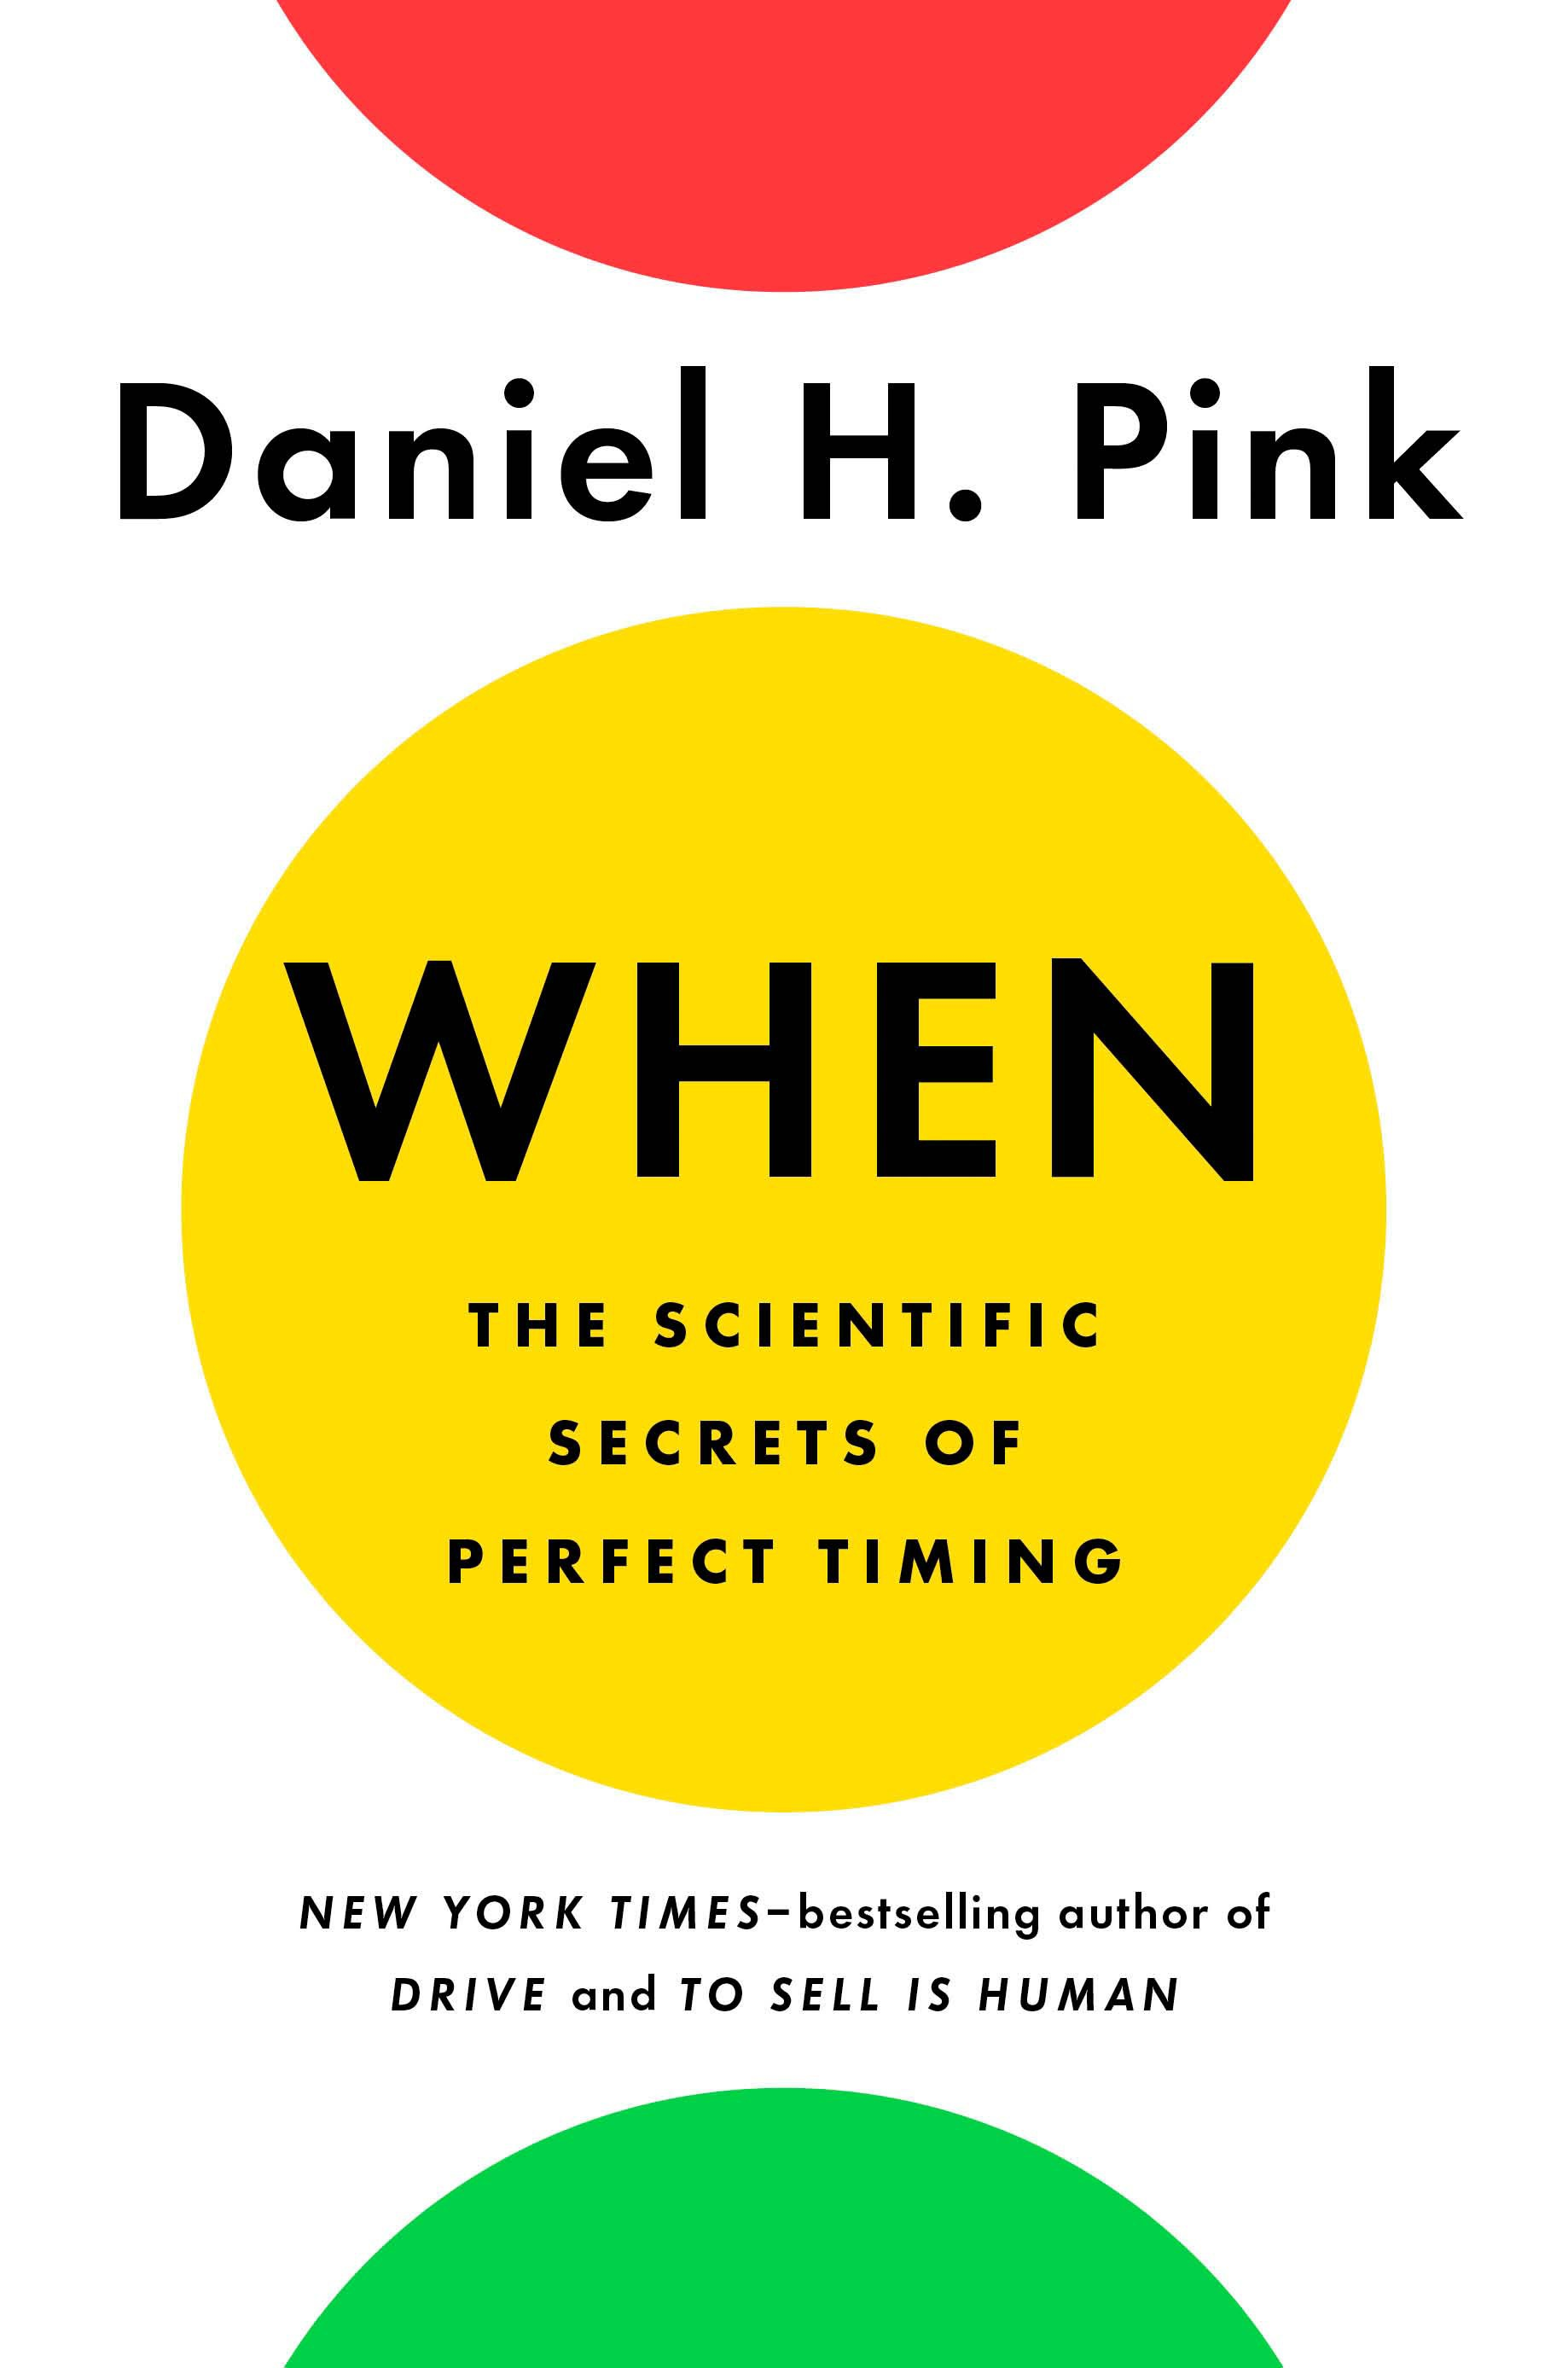 Friends of the SMU Libraries present Daniel H. Pink and WHEN:  The Scientific Secrets of Perfect Timing